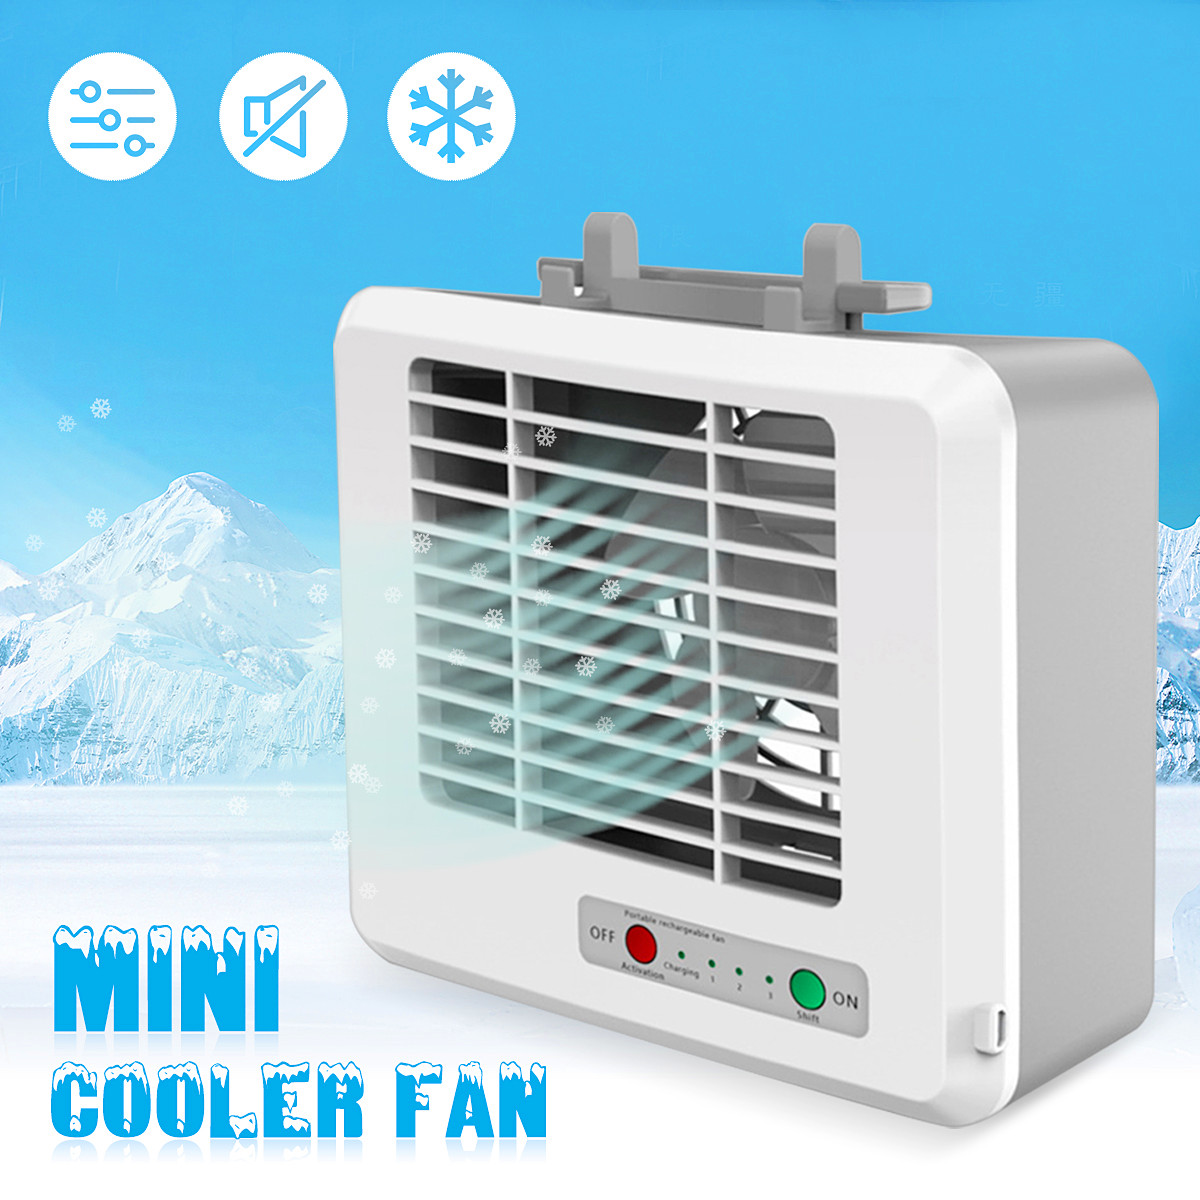 5V Portable Desktop Mini USB Quiet Strong Air Cooler Fan